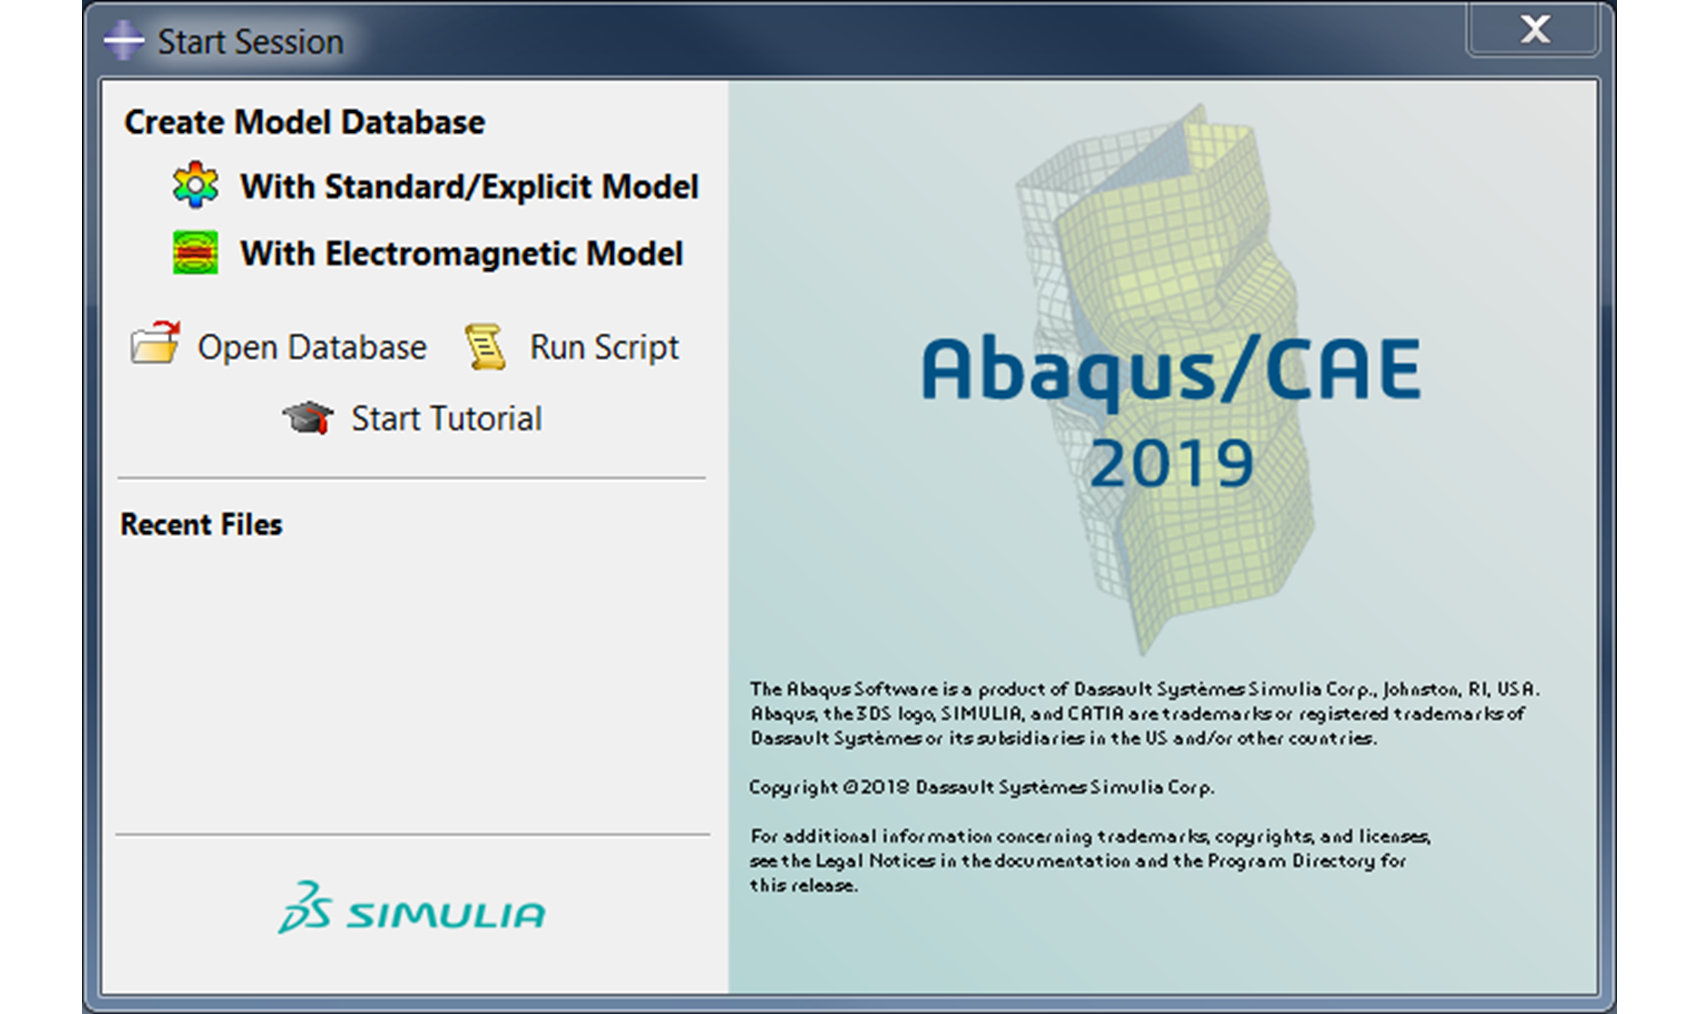 Abaqus 2019 new features, download and installation